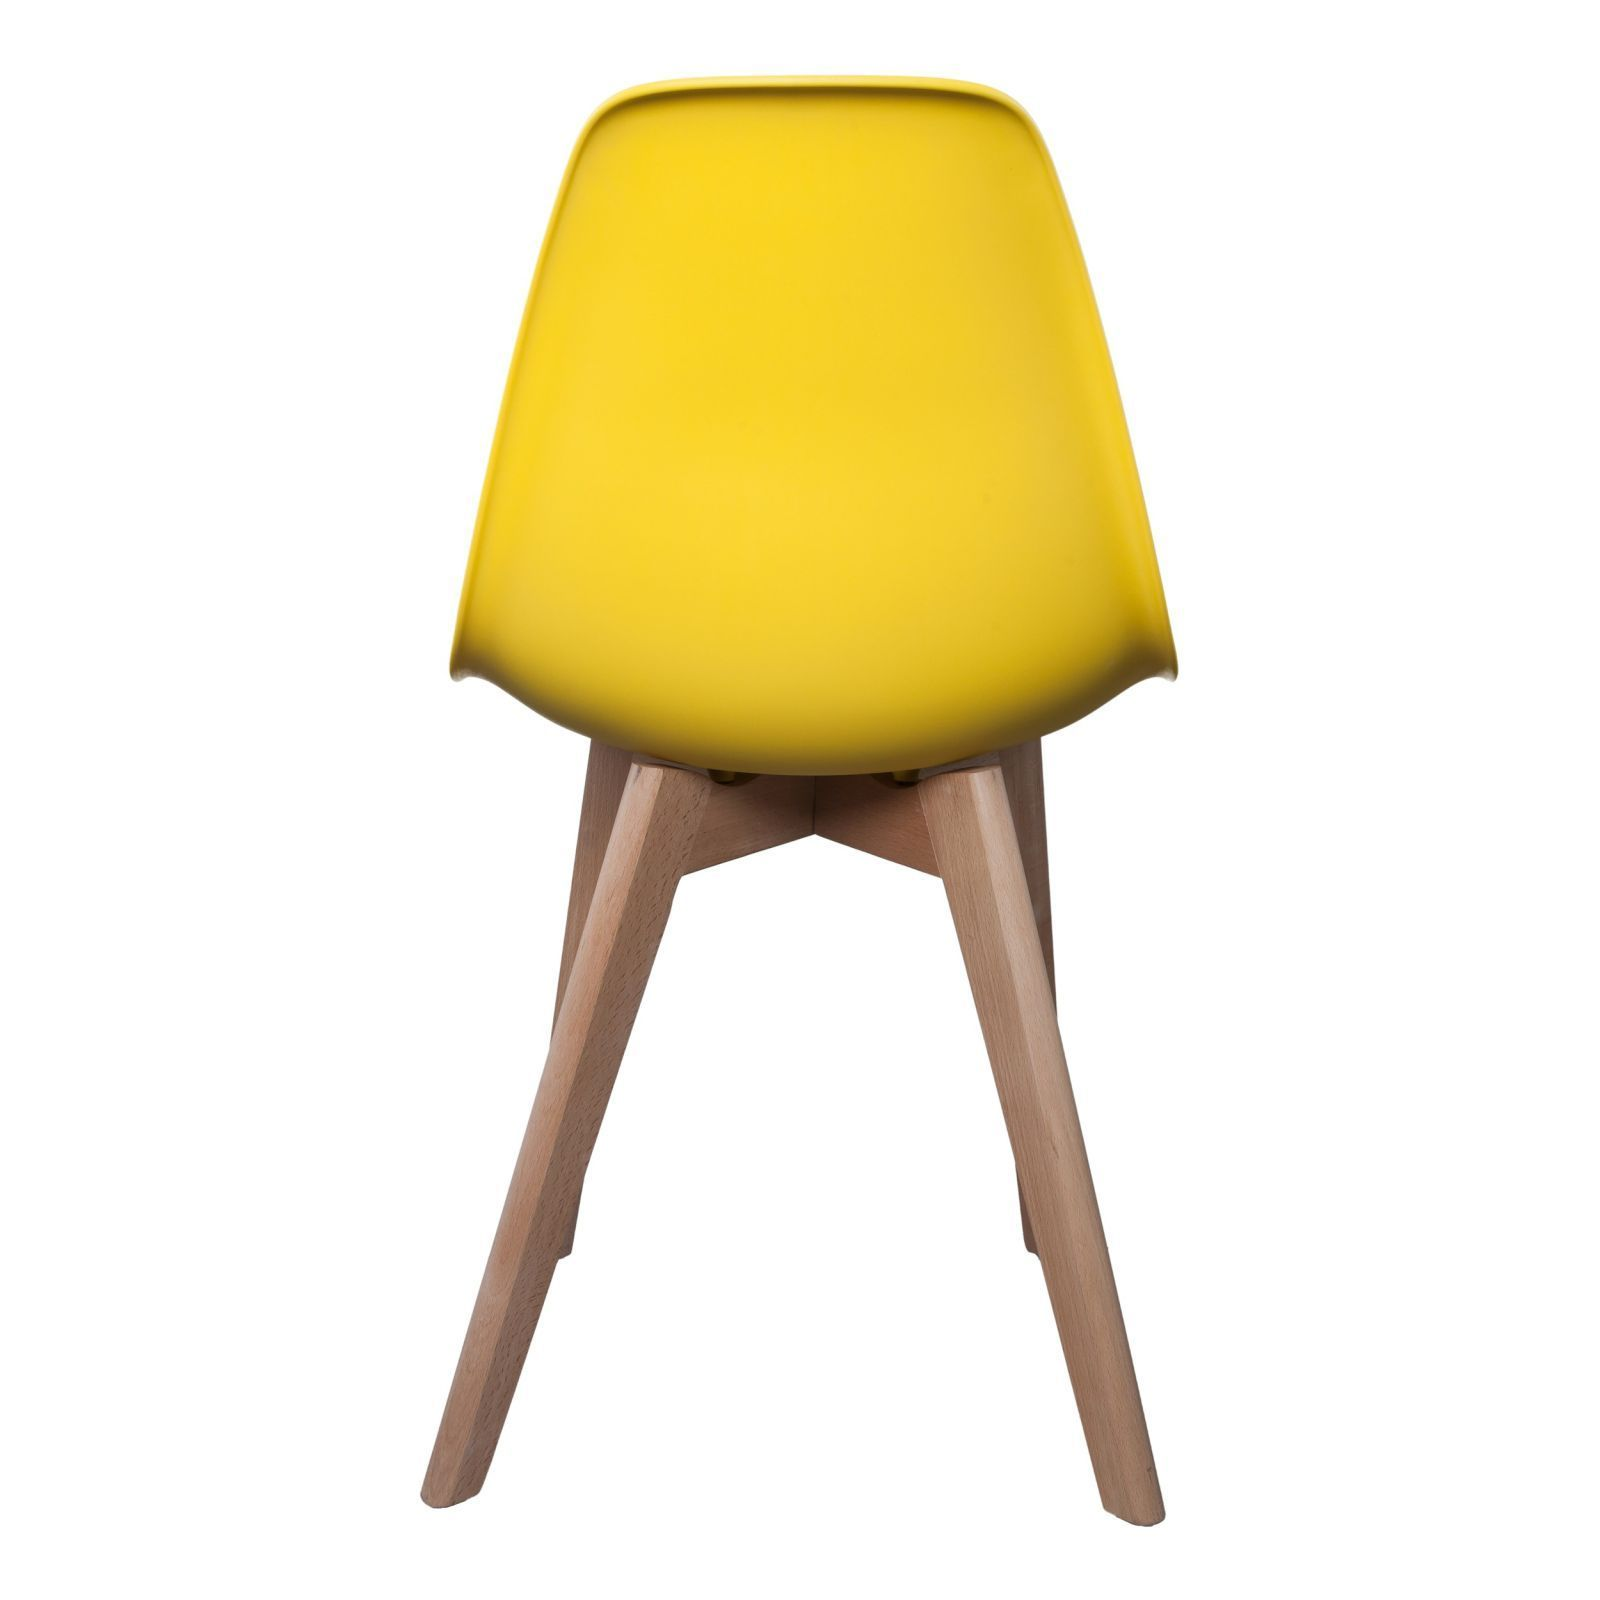 Deco Scandinave Jaune The Home Deco Factory Lot De 2 Chaises Scandinave Jaune